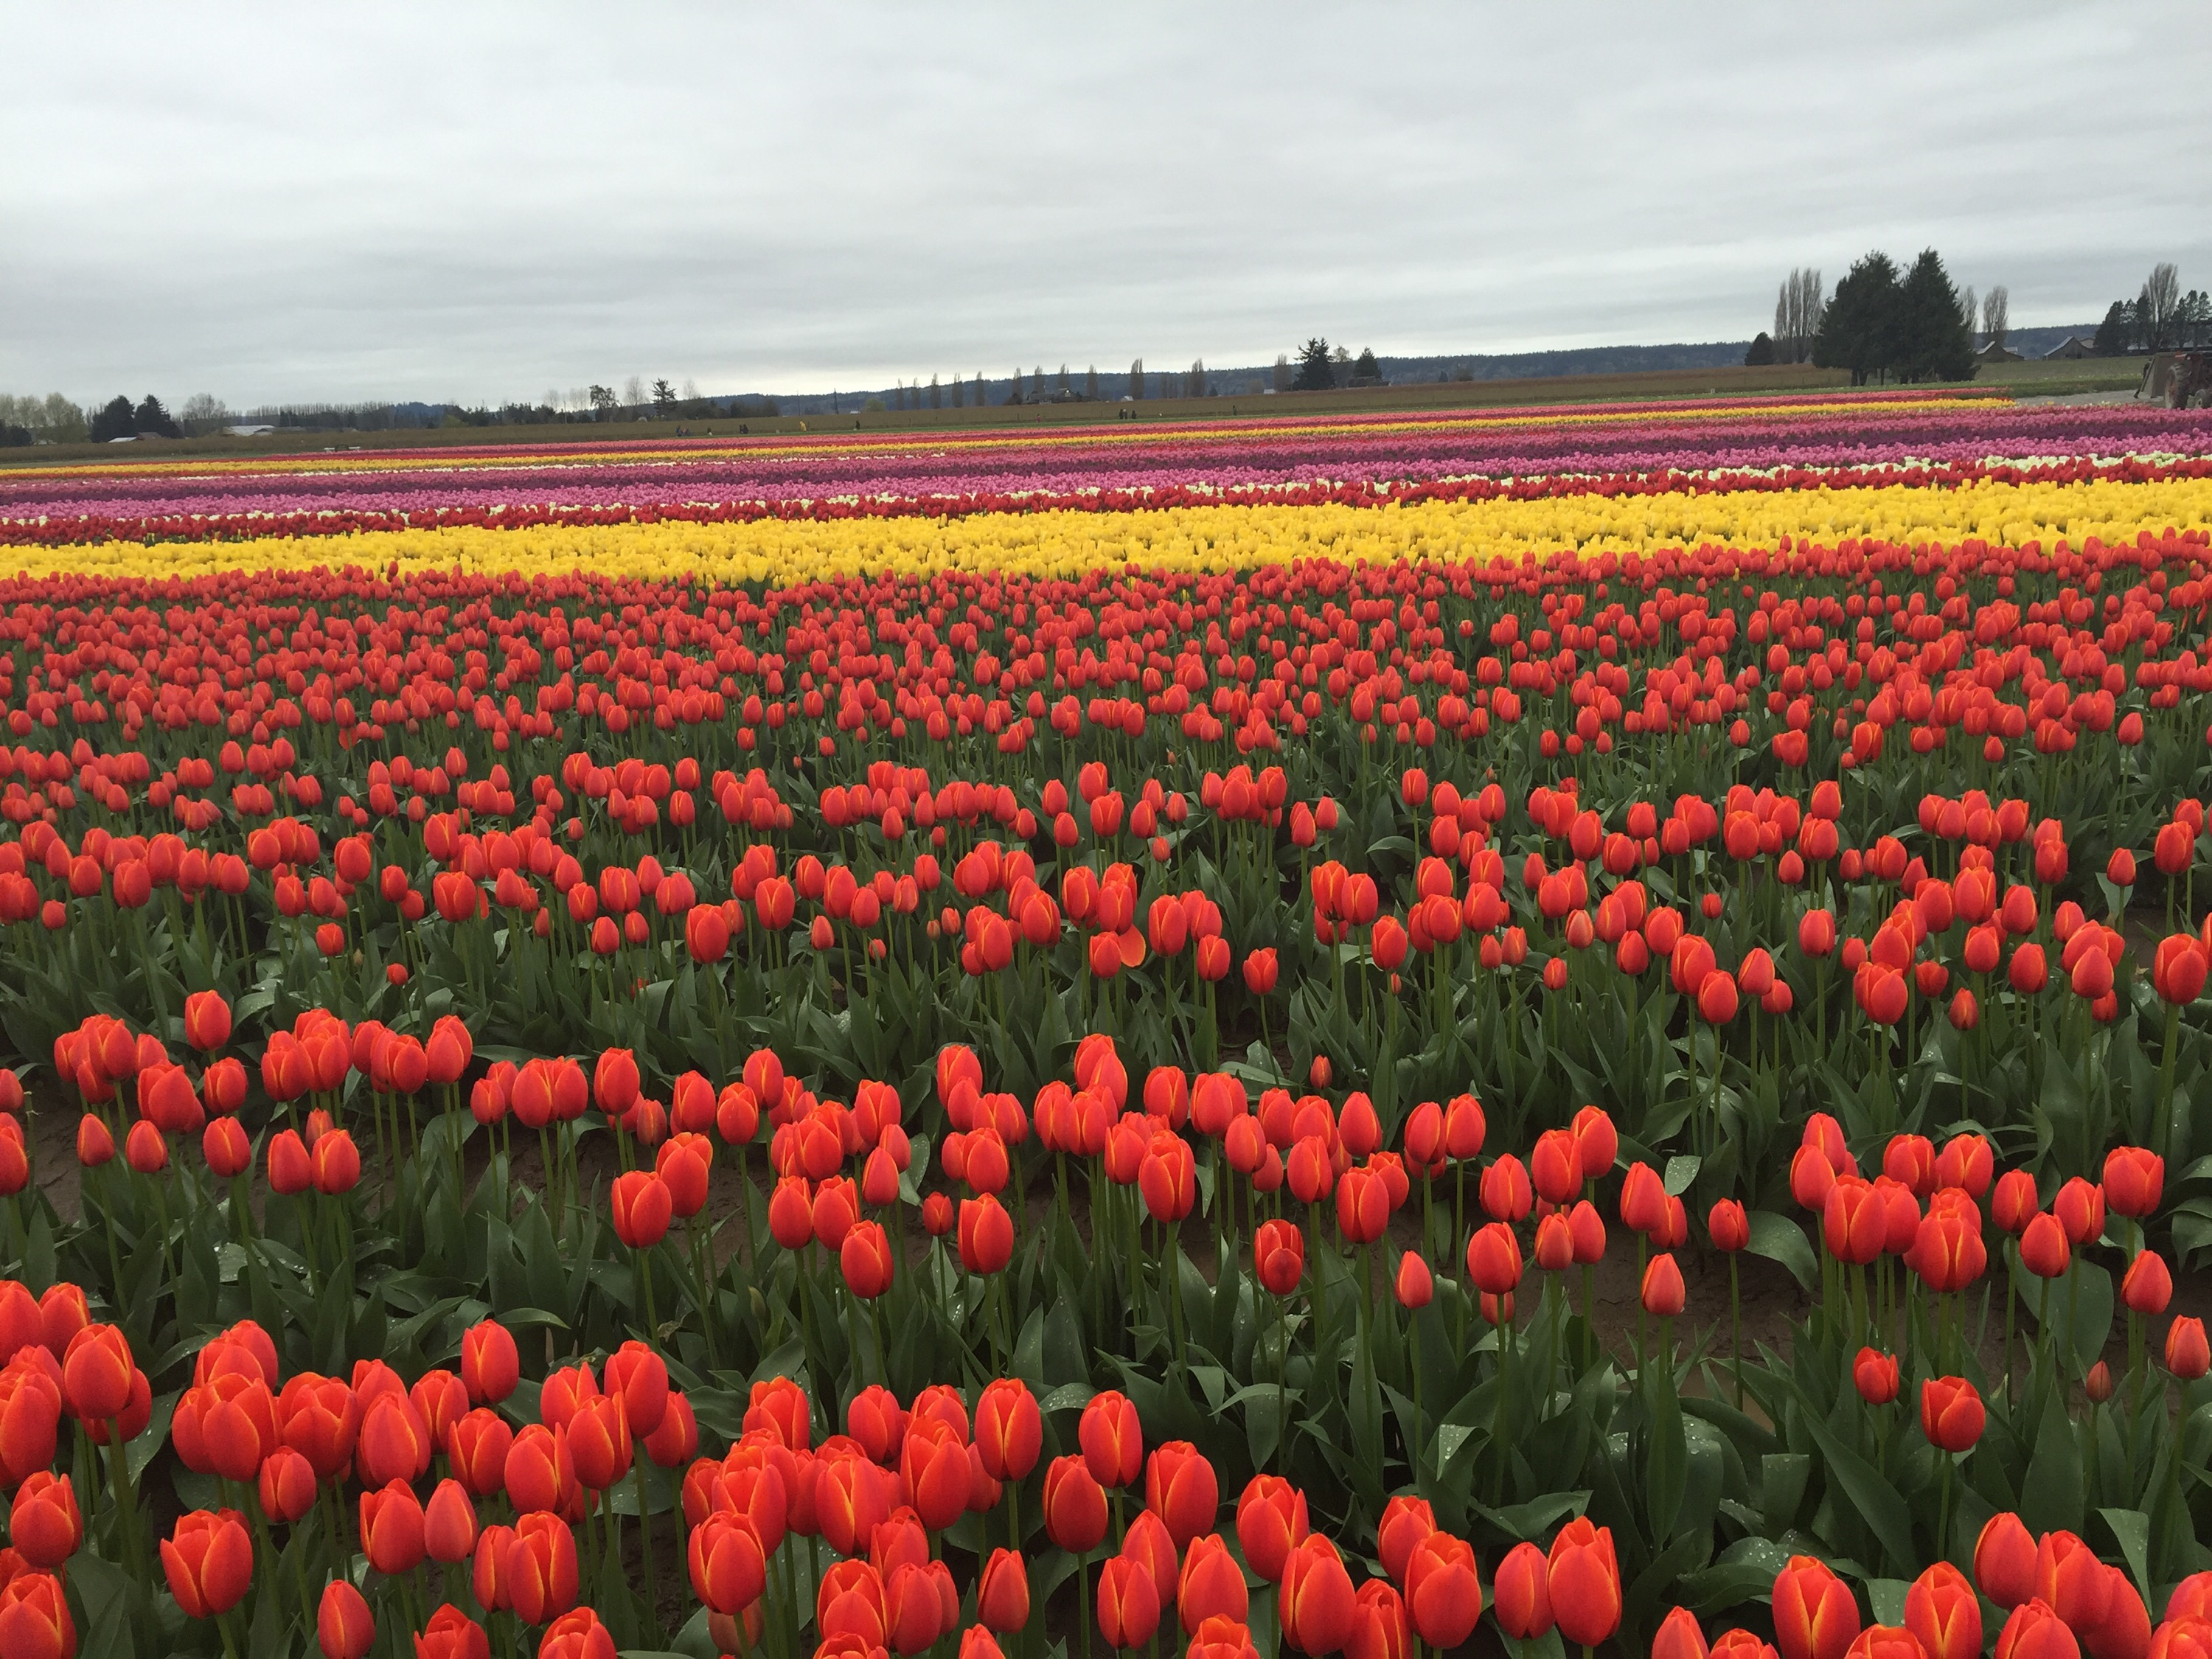 These Are Our Tulips Today >> Tulip Festival Renee Beauregard Lute